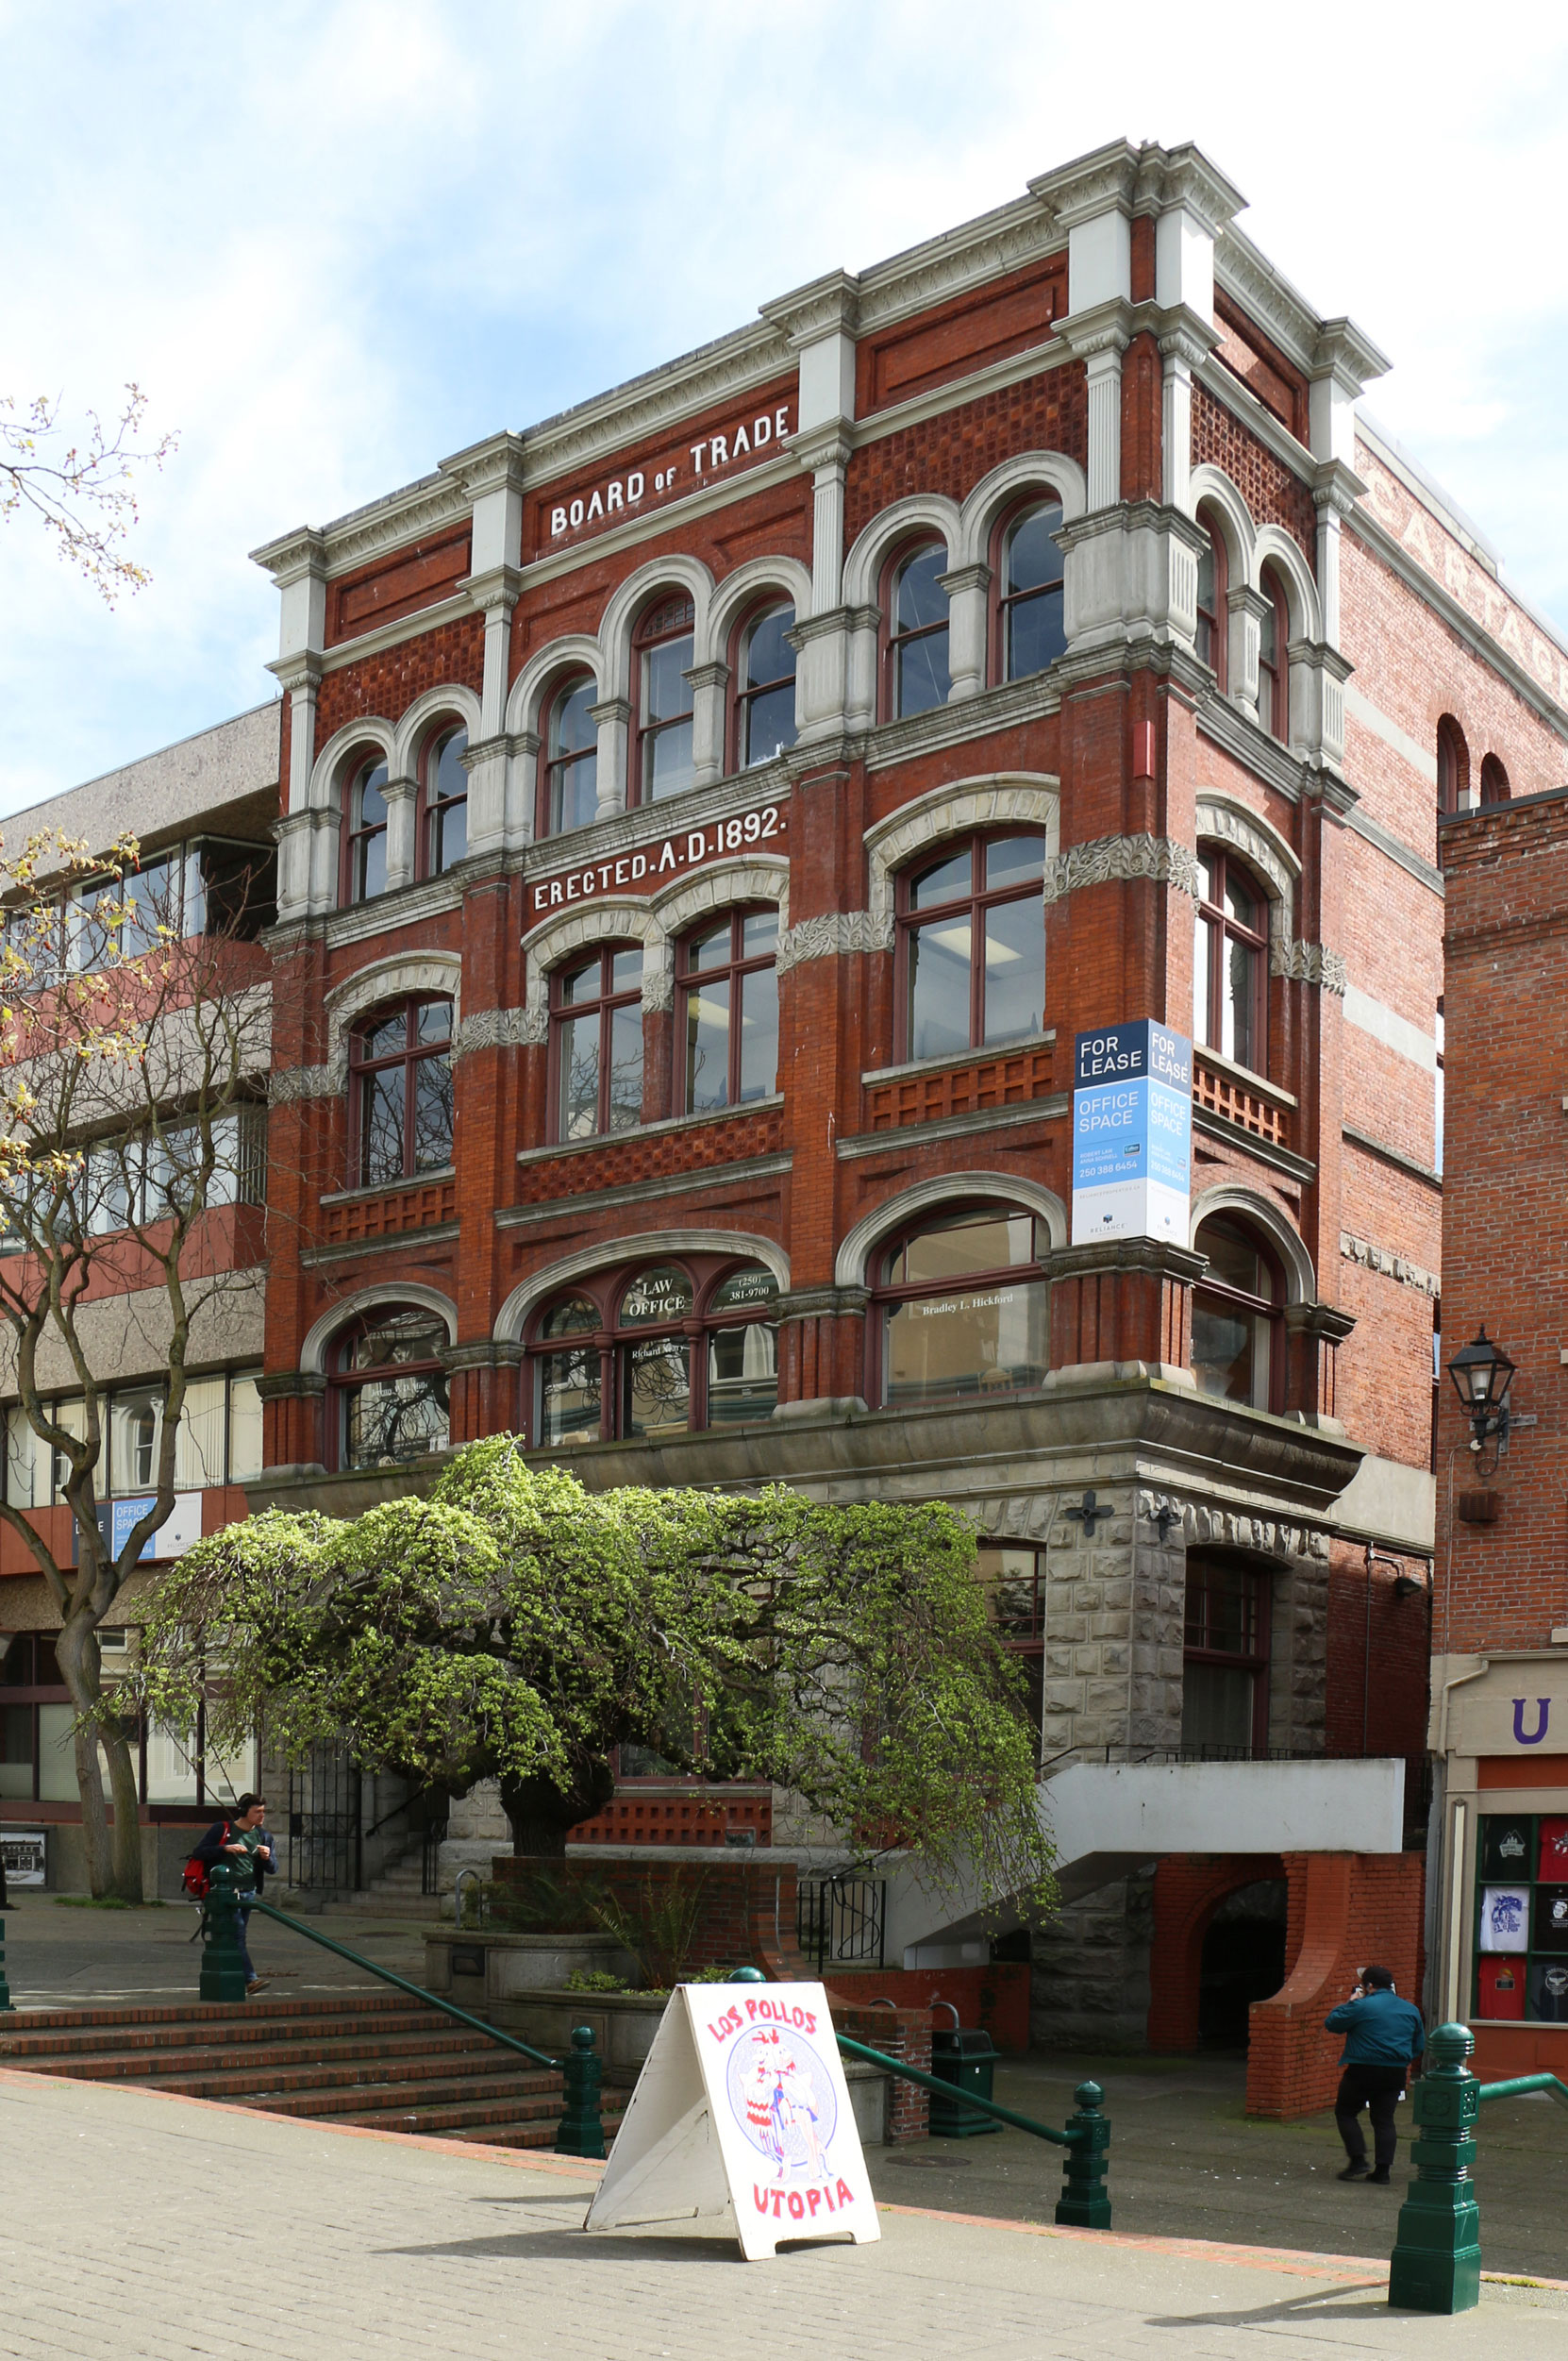 The Board of Trade Building, 31 Bastion Square, Victoria, B.C. The Vancouver Portland Cement Company had its head office in the Board of Trade Building from 1904-1906. The company kept its Victoria head office in the Board of Trade Building until 1919 (photo by Author)